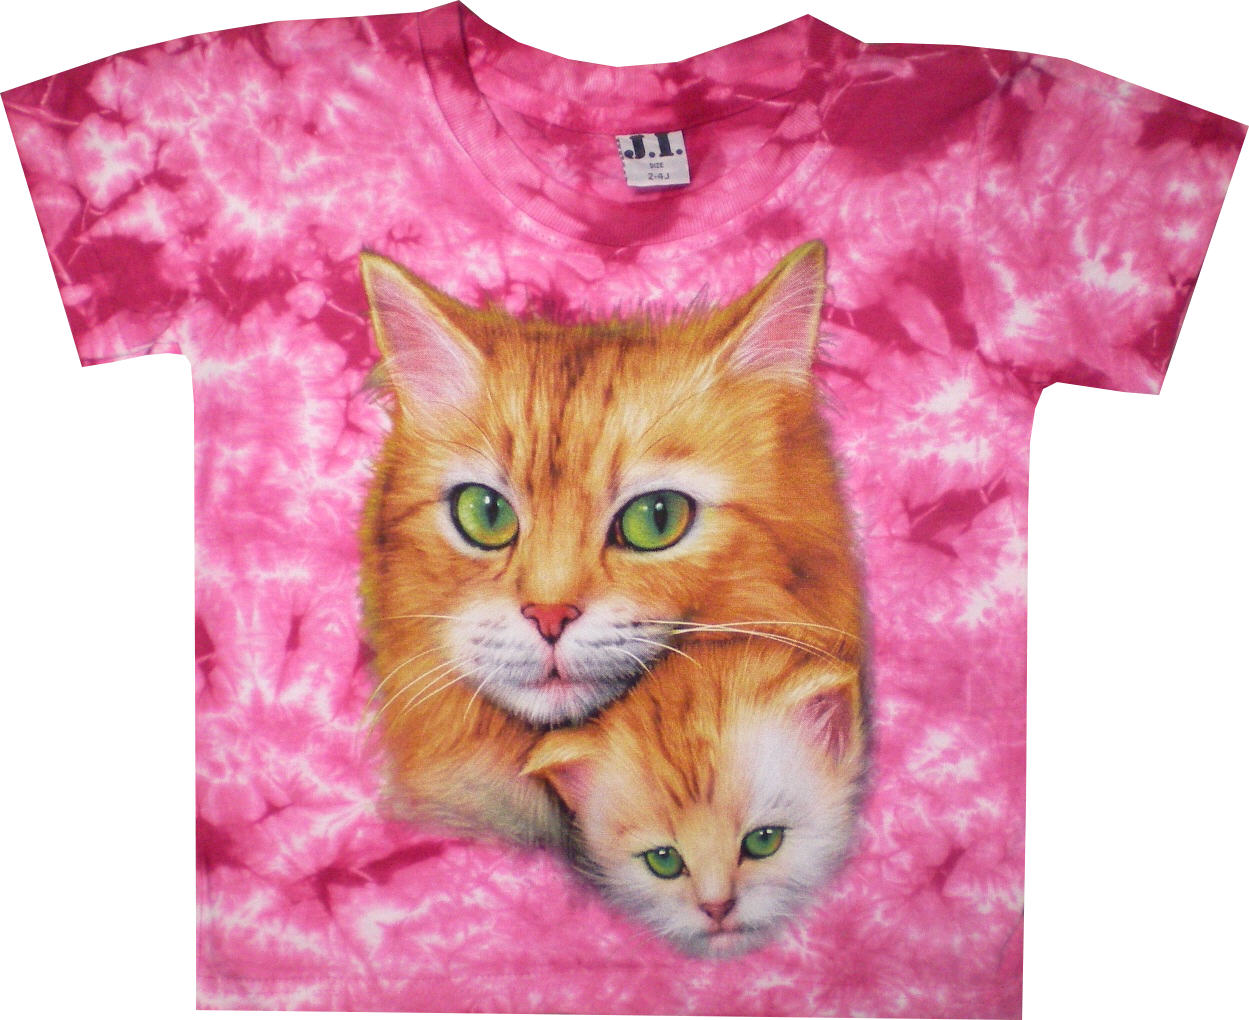 Kinder T Shirt In Batik Mit Katzen Modetrends Red Blouse Sj0015 Iqbal Onlineshop